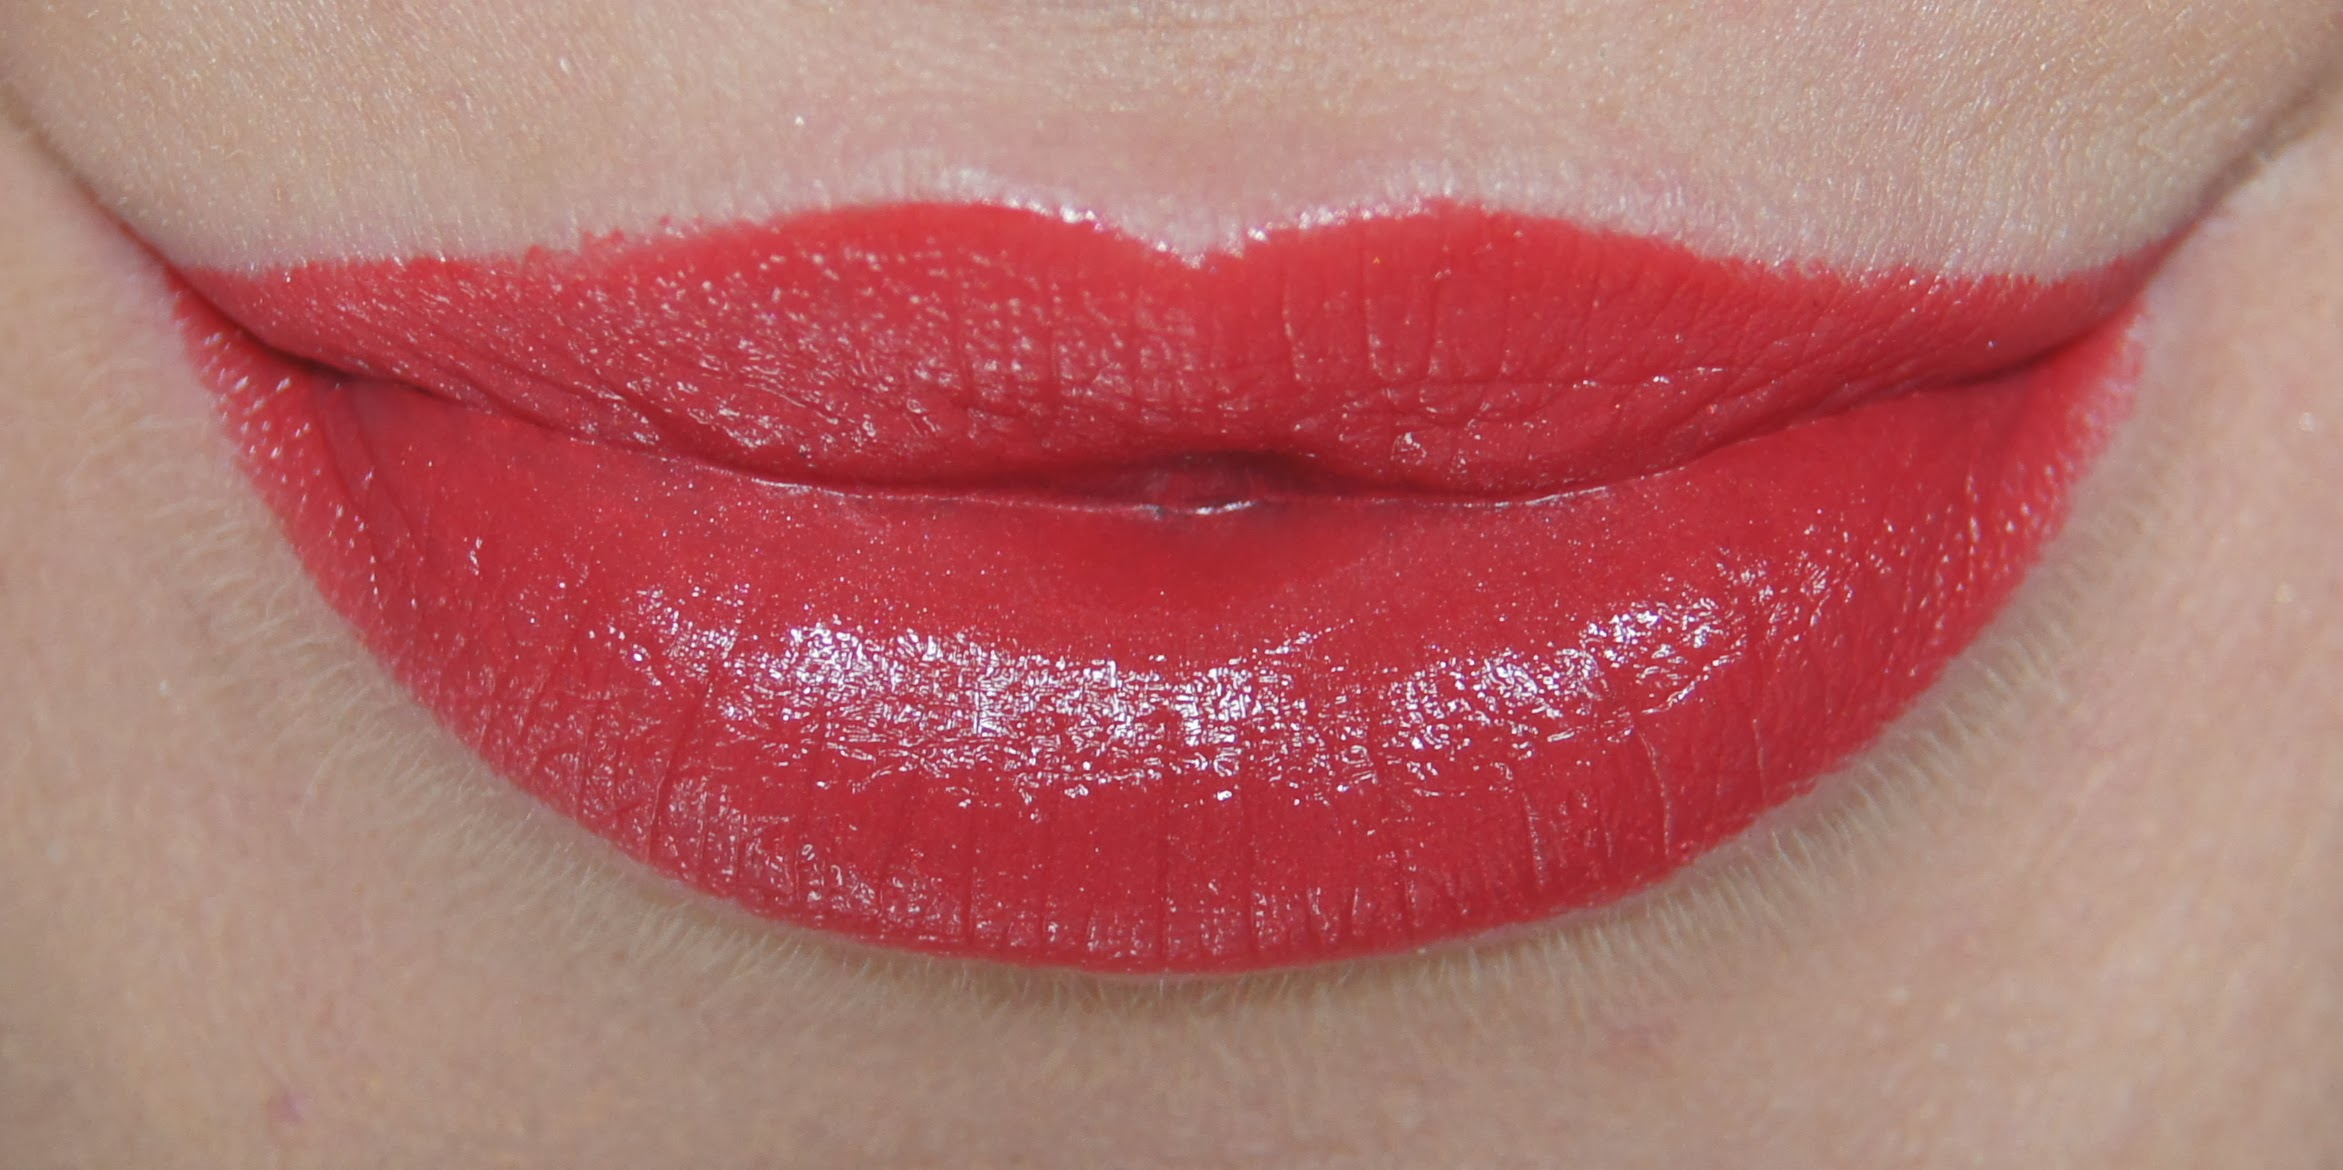 Dior Rouge Dior Lipstick 644 Rouge Blossom Swatch